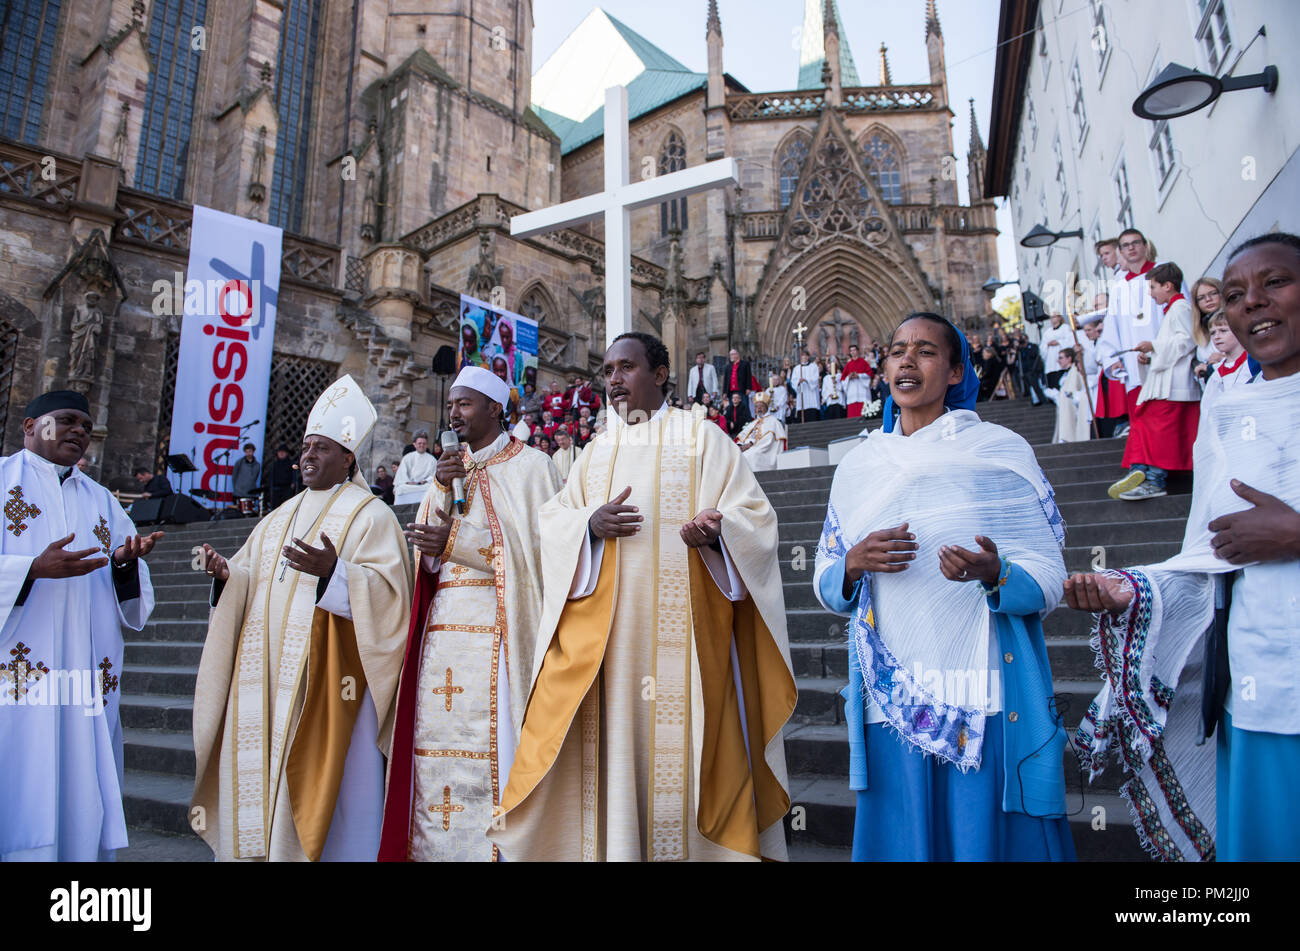 Erfurt, Thuringia. 16th Sep, 2018. Representatives of the church from Ethiopia sing at the opening of the nationwide relief action of the International Catholic Missionswerkes missio on the occasion of the diocese pilgrimage on the steps of Erfurt Cathedral. Credit: Jens-Ulrich Koch/dpa-Zentralbild/dpa/Alamy Live News - Stock Image